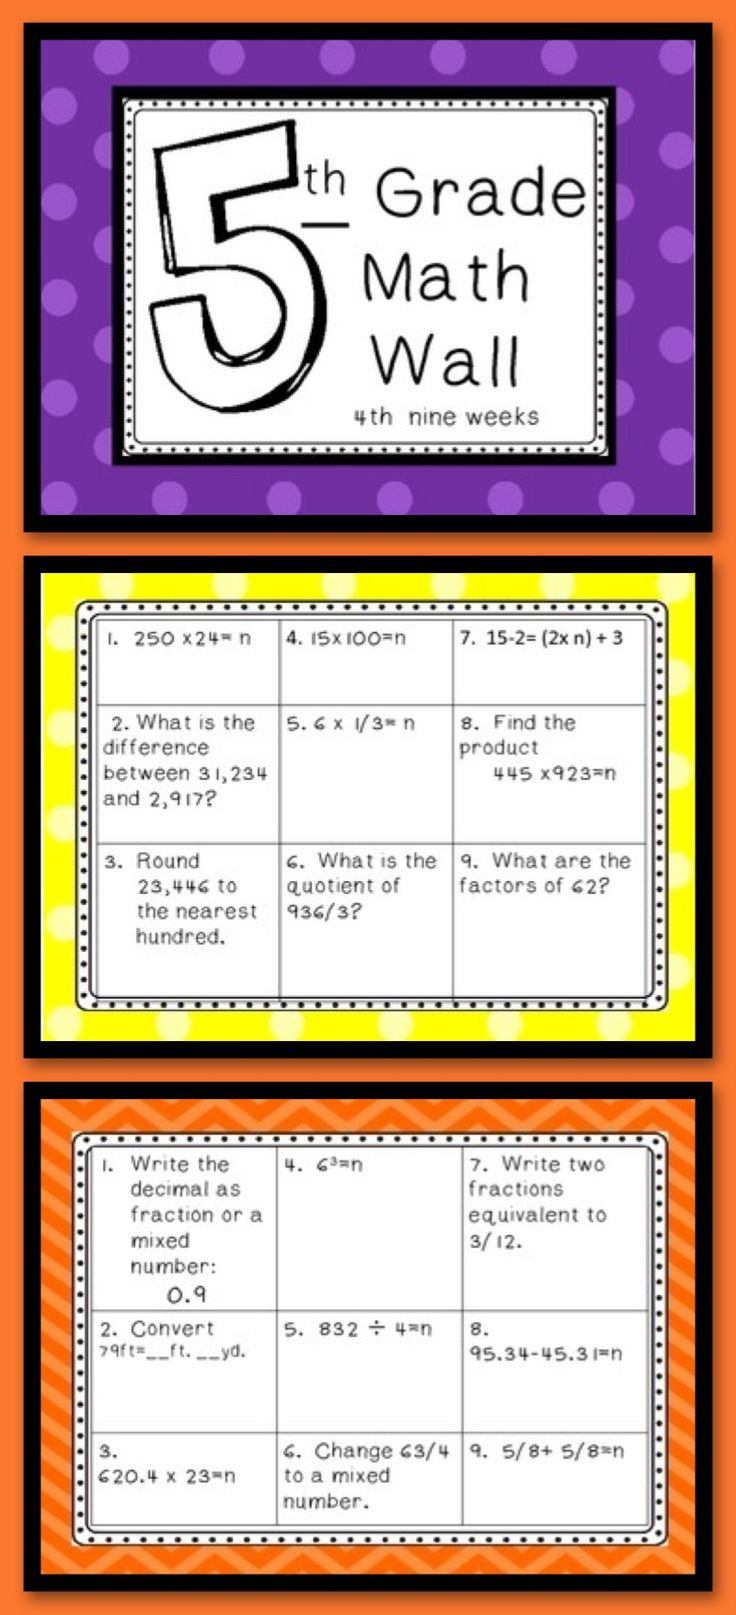 5th Grade Math Wall is a daily short review of math skills. The focus on the 4th nine weeks is to build a foundation of fractions and decimals. Class discussions and students modeling how they solved their problems will help build a strong mathematical foundation for algebra. I use this daily, I project it on the interactive board. Students complete the activities in their math journal and we check it together. It takes about 15- 20 minutes, but it creates great class discussions.